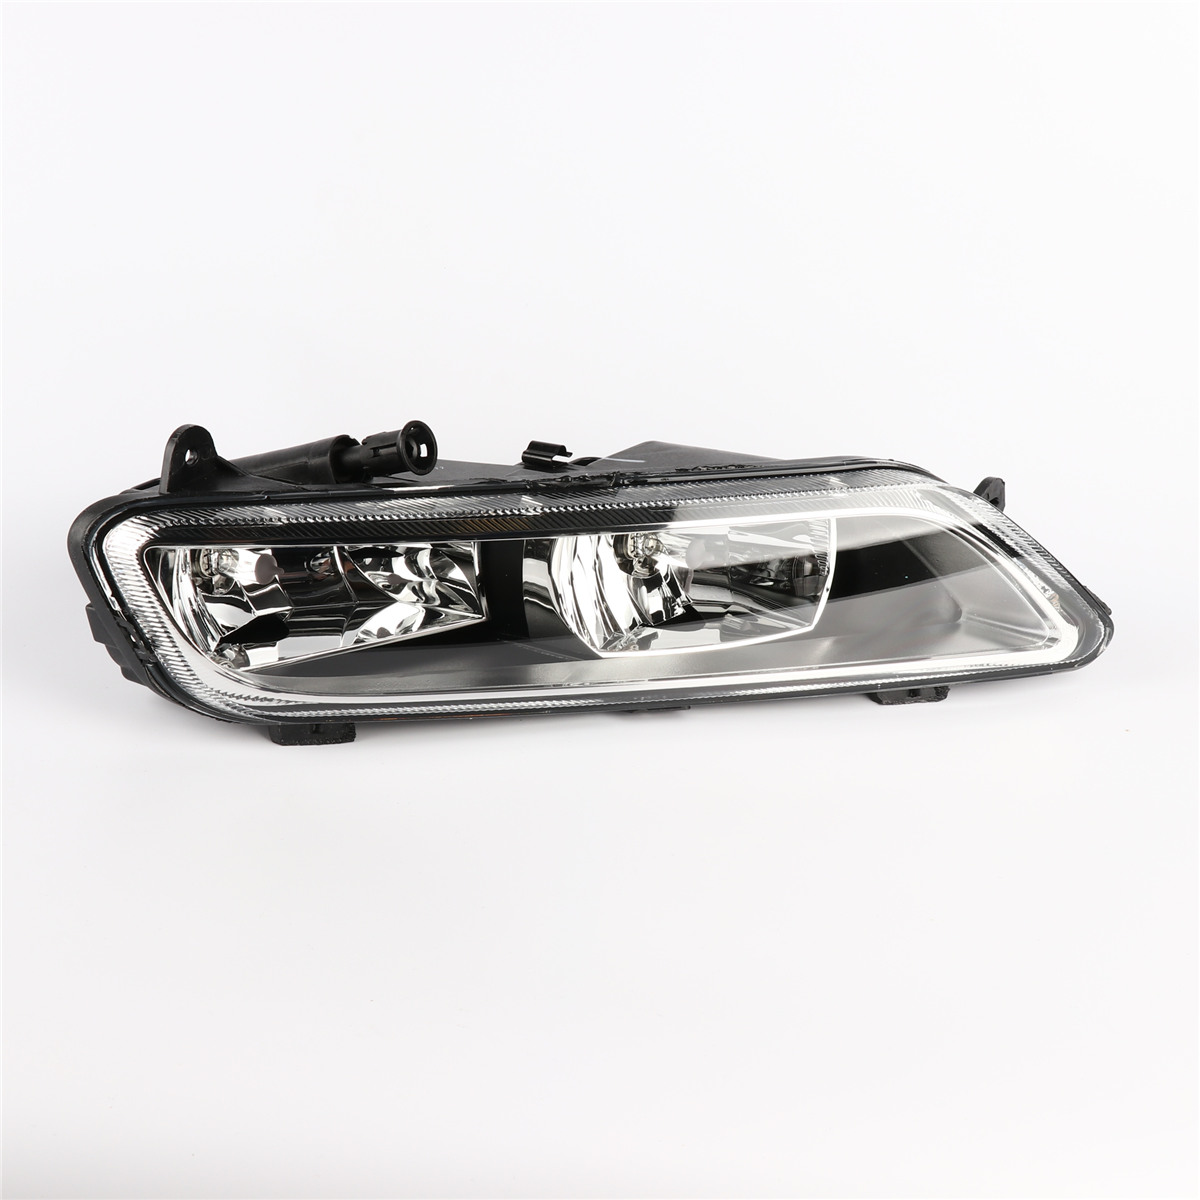 1PCS OEM Front Left Halogen Fog Lamp Light 3AD 941 661 Bumper H8 Bulb For VW Passat B7 1pcs oem front left halogen fog lamp light 3ad 941 661 for vw passat b7